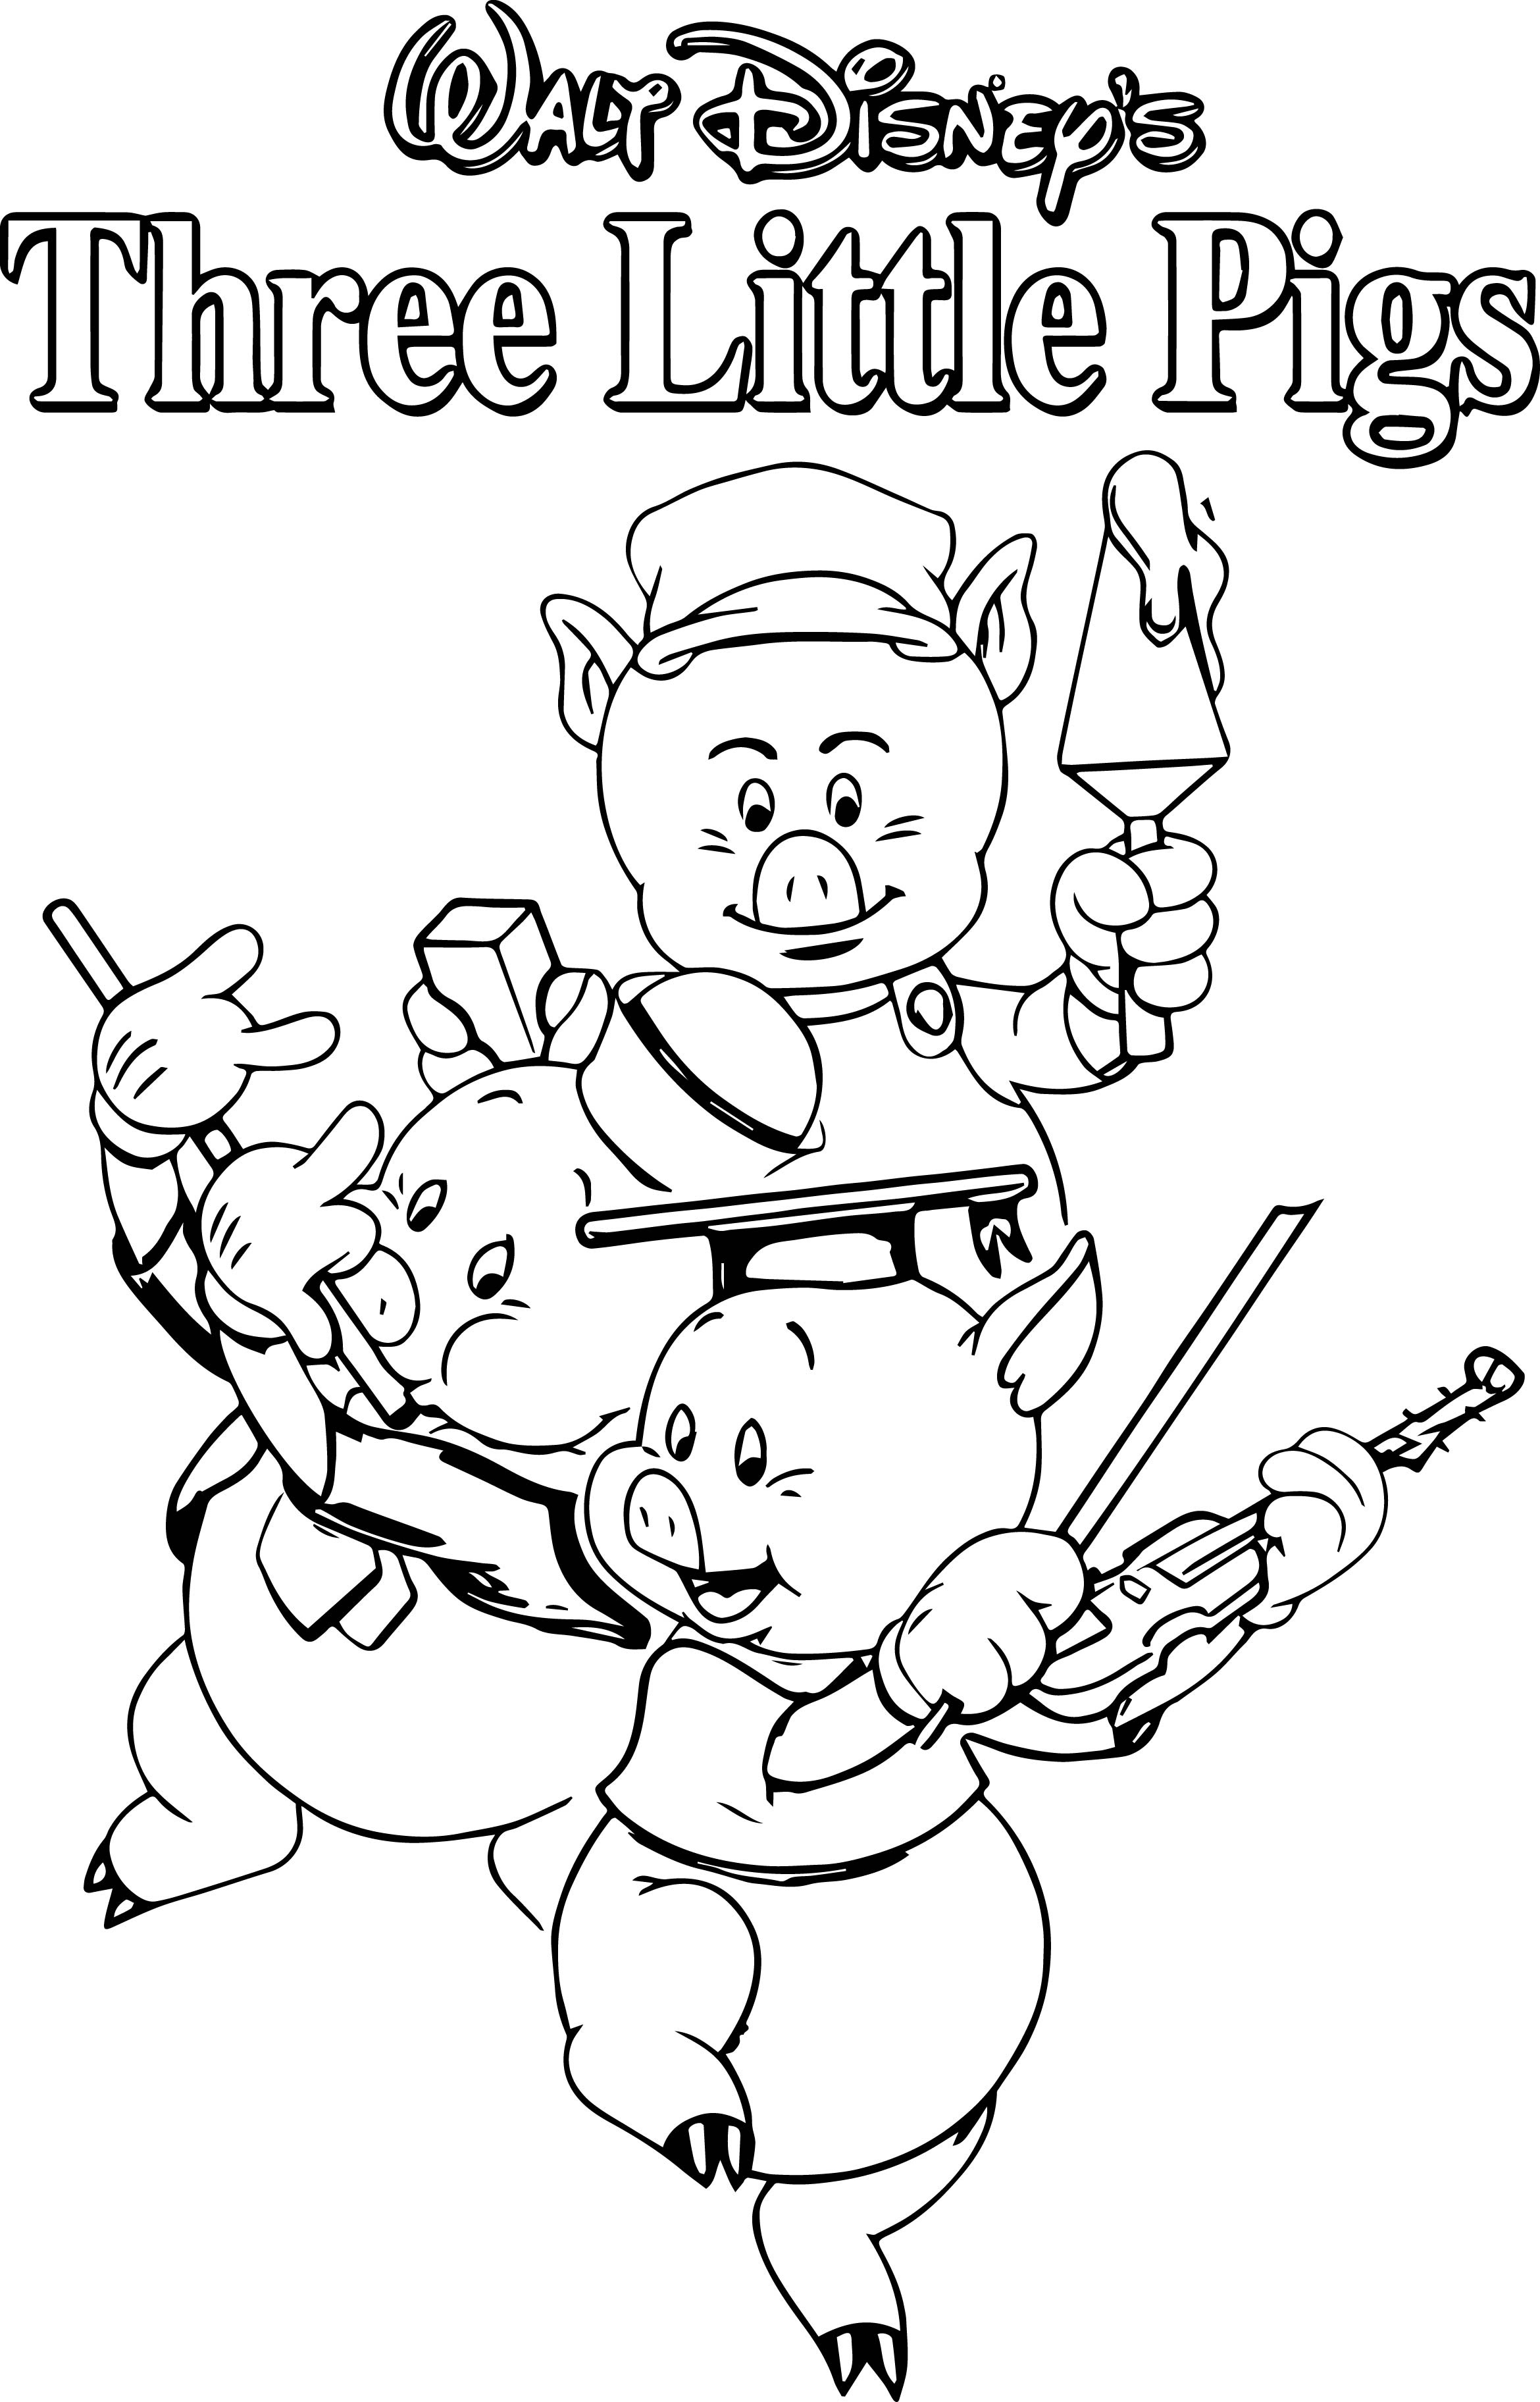 The Three Little Pigs Coloring Pages - Coloring Pages Kids 2019